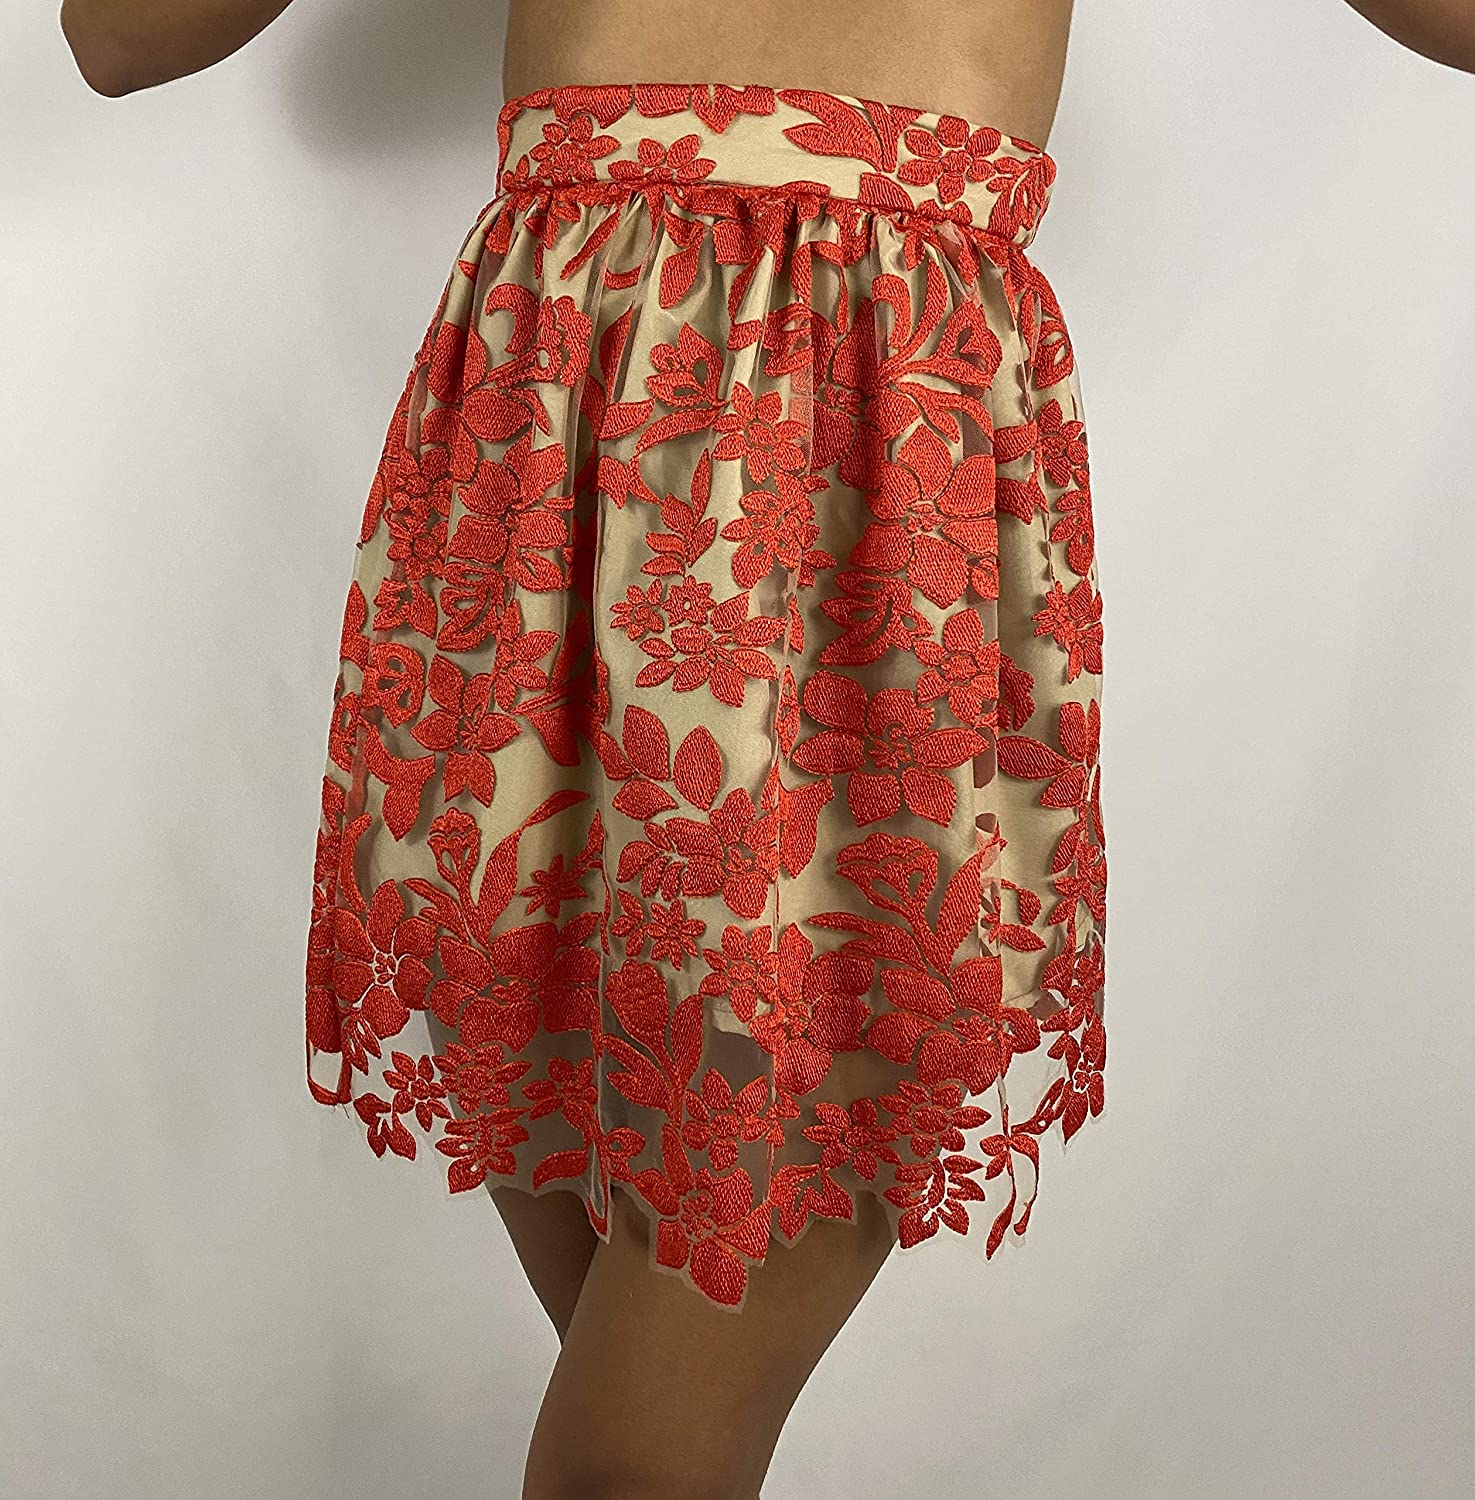 Large-scale sale Women's designer Floral Mail order cheap Red Skirt Lace